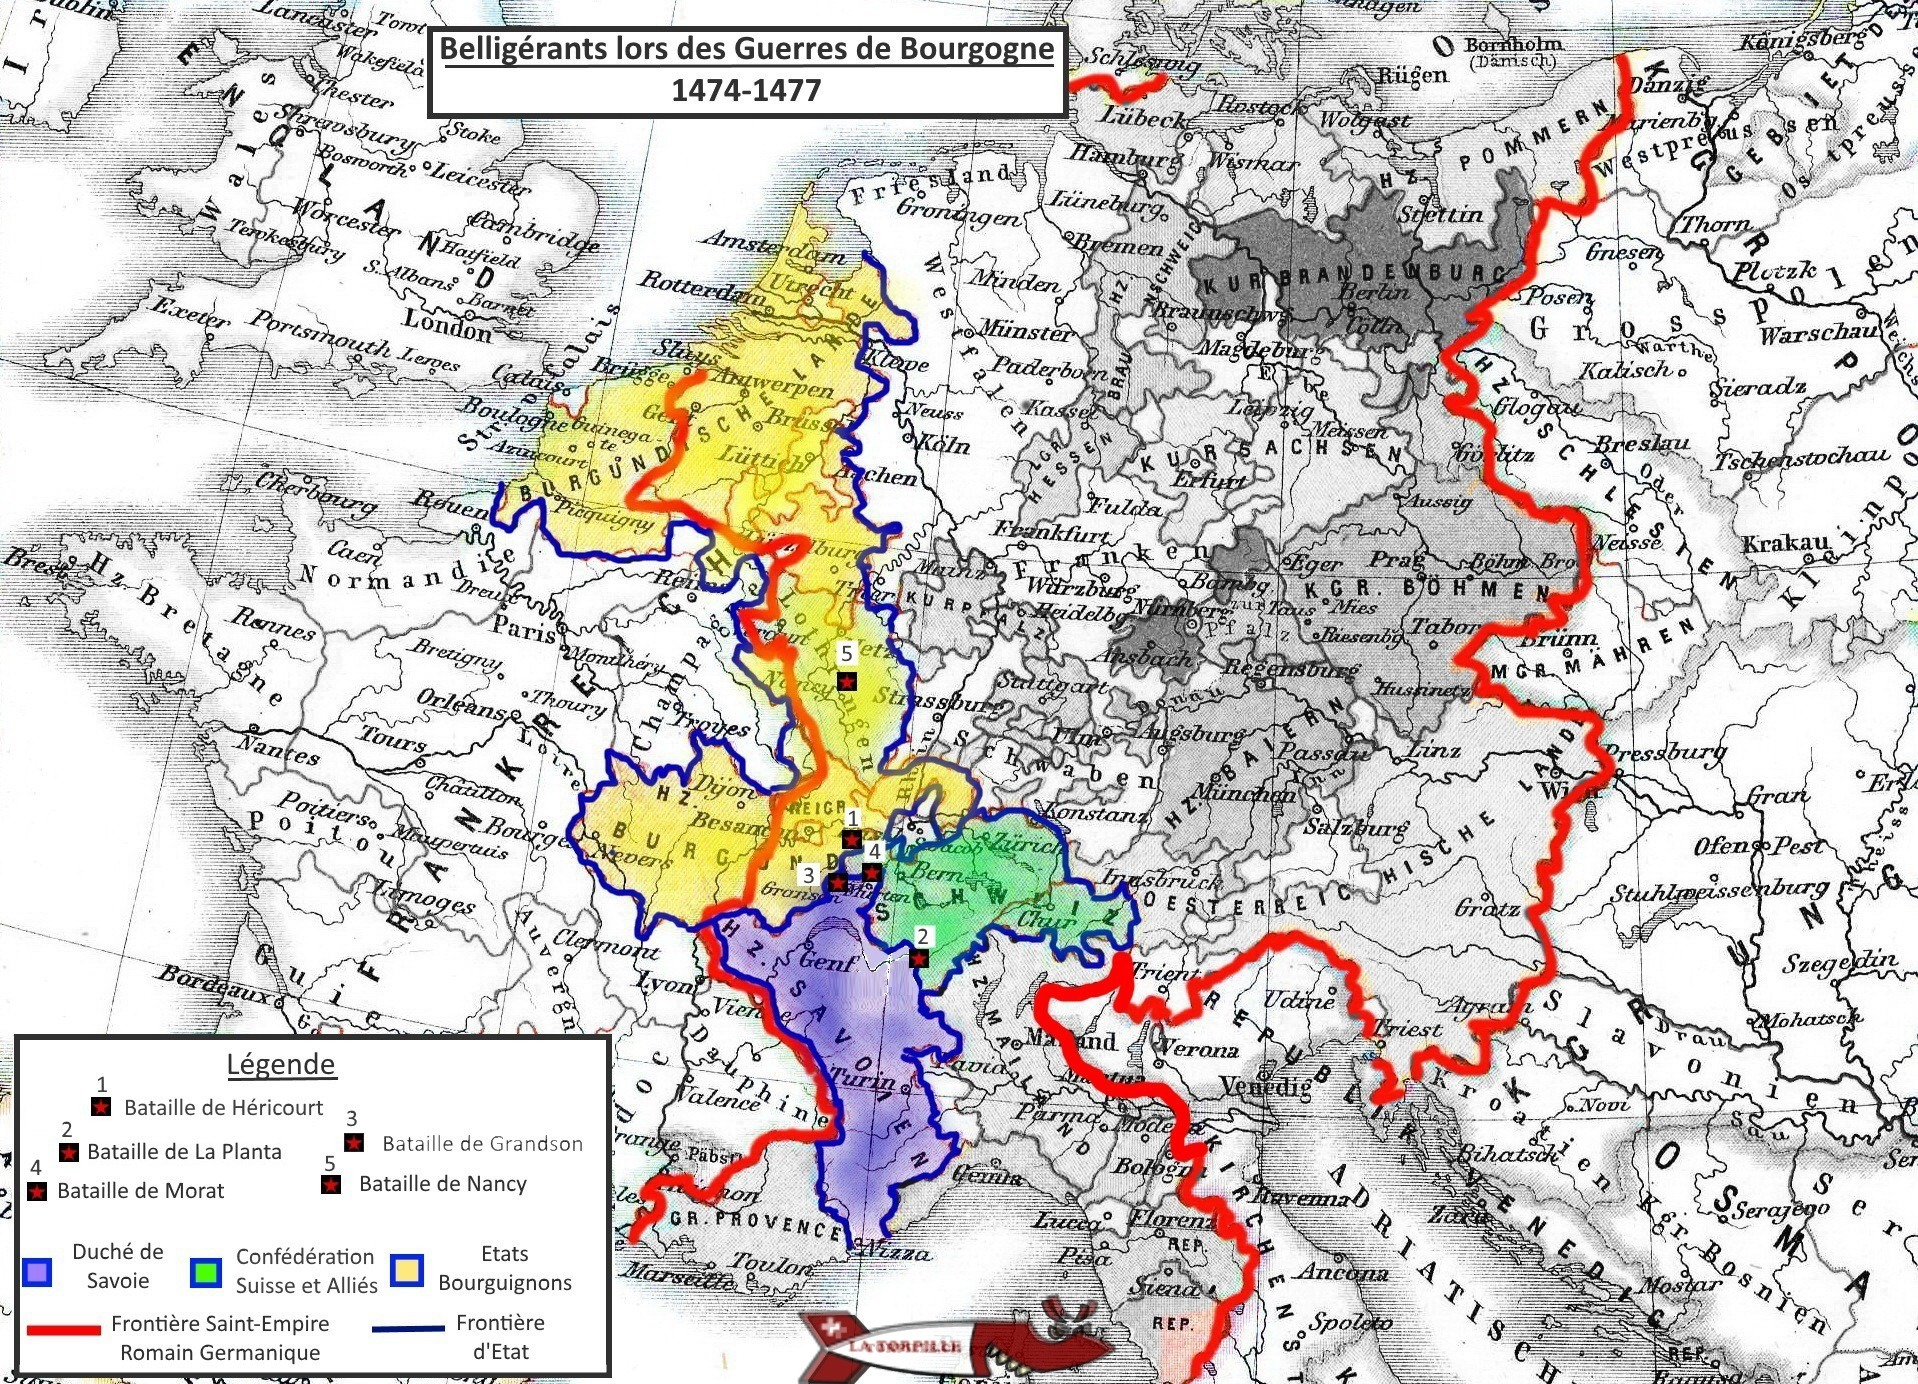 A map showing the territory of the parties in conflict during the Burgundian Wars.